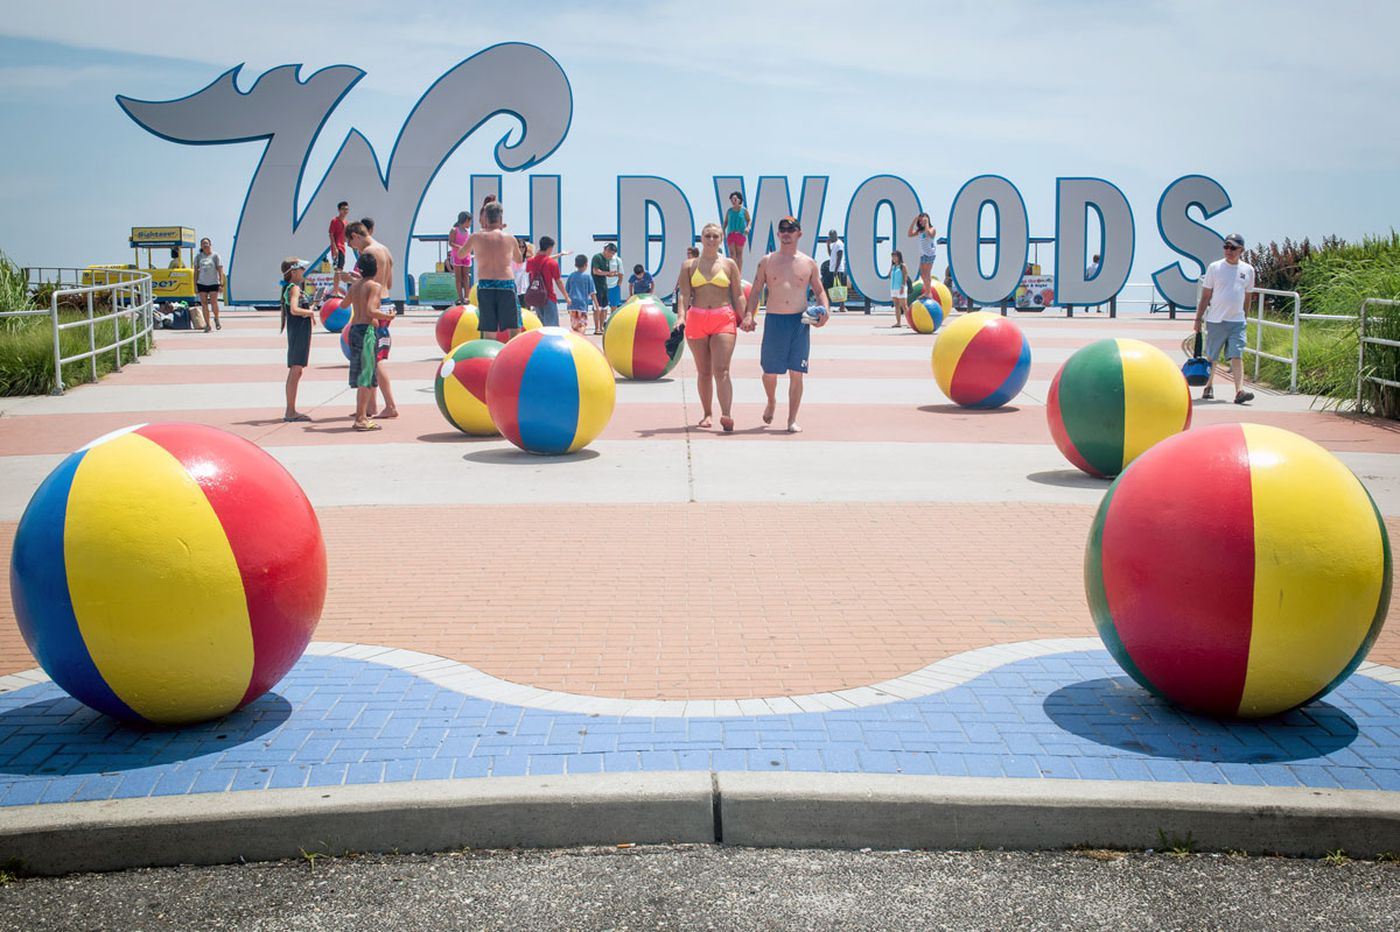 The 'Wildwoods' remain intact; voters in North Wildwood say no to name change